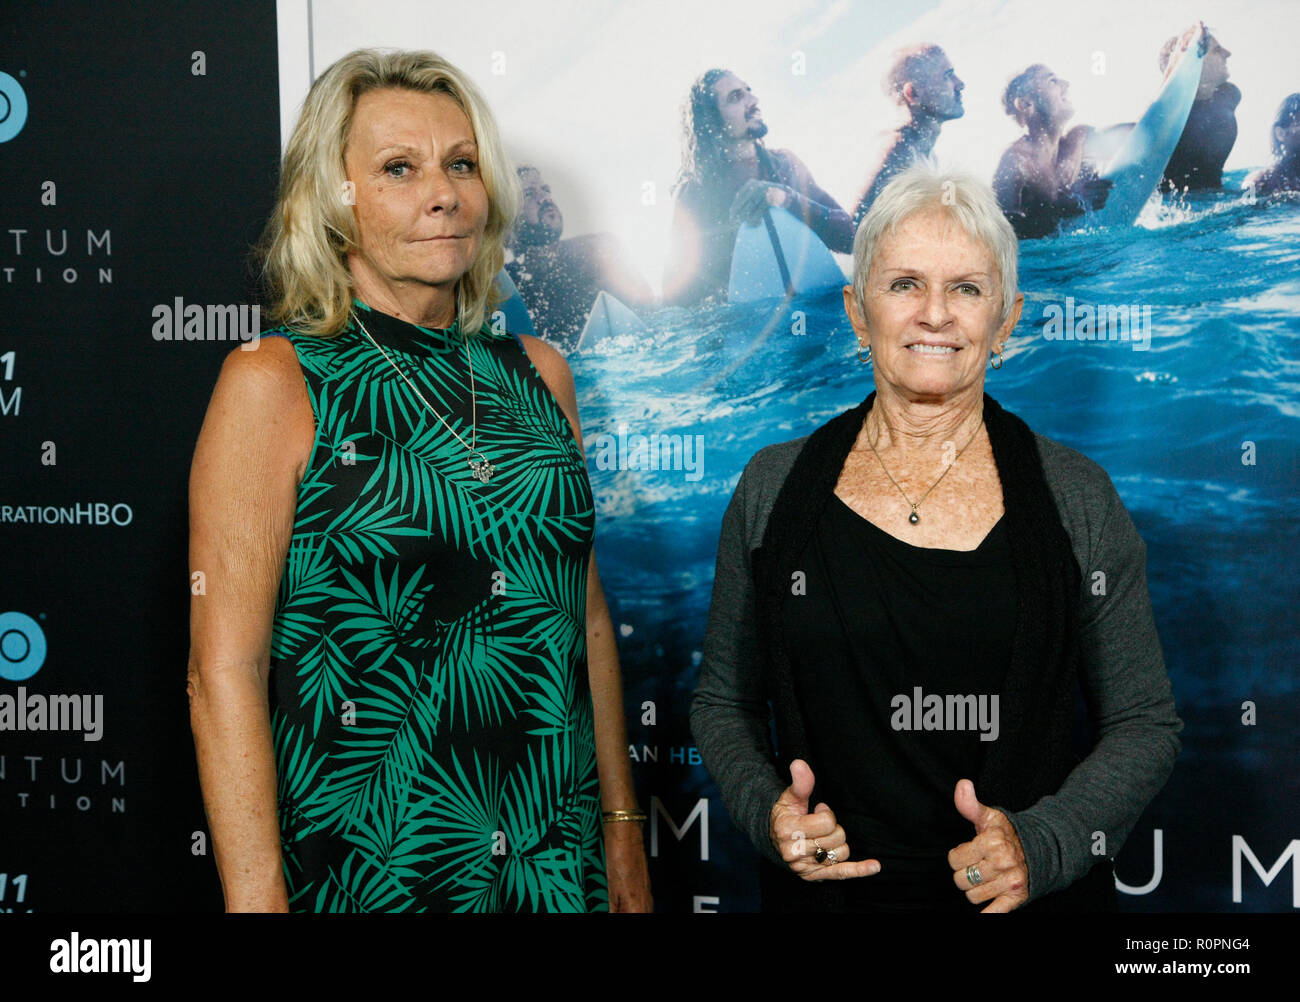 Santa Monica, CA. 05th Nov, 2018. Barbara Lancaster and Jeannie Chesser attend HBO's 'Momentum Generation' Premiere at The Broad Stage on November 05 2018 in Santa Monica CA. Credit: Cra Sh/Image Space/Media Punch/Alamy Live News - Stock Image